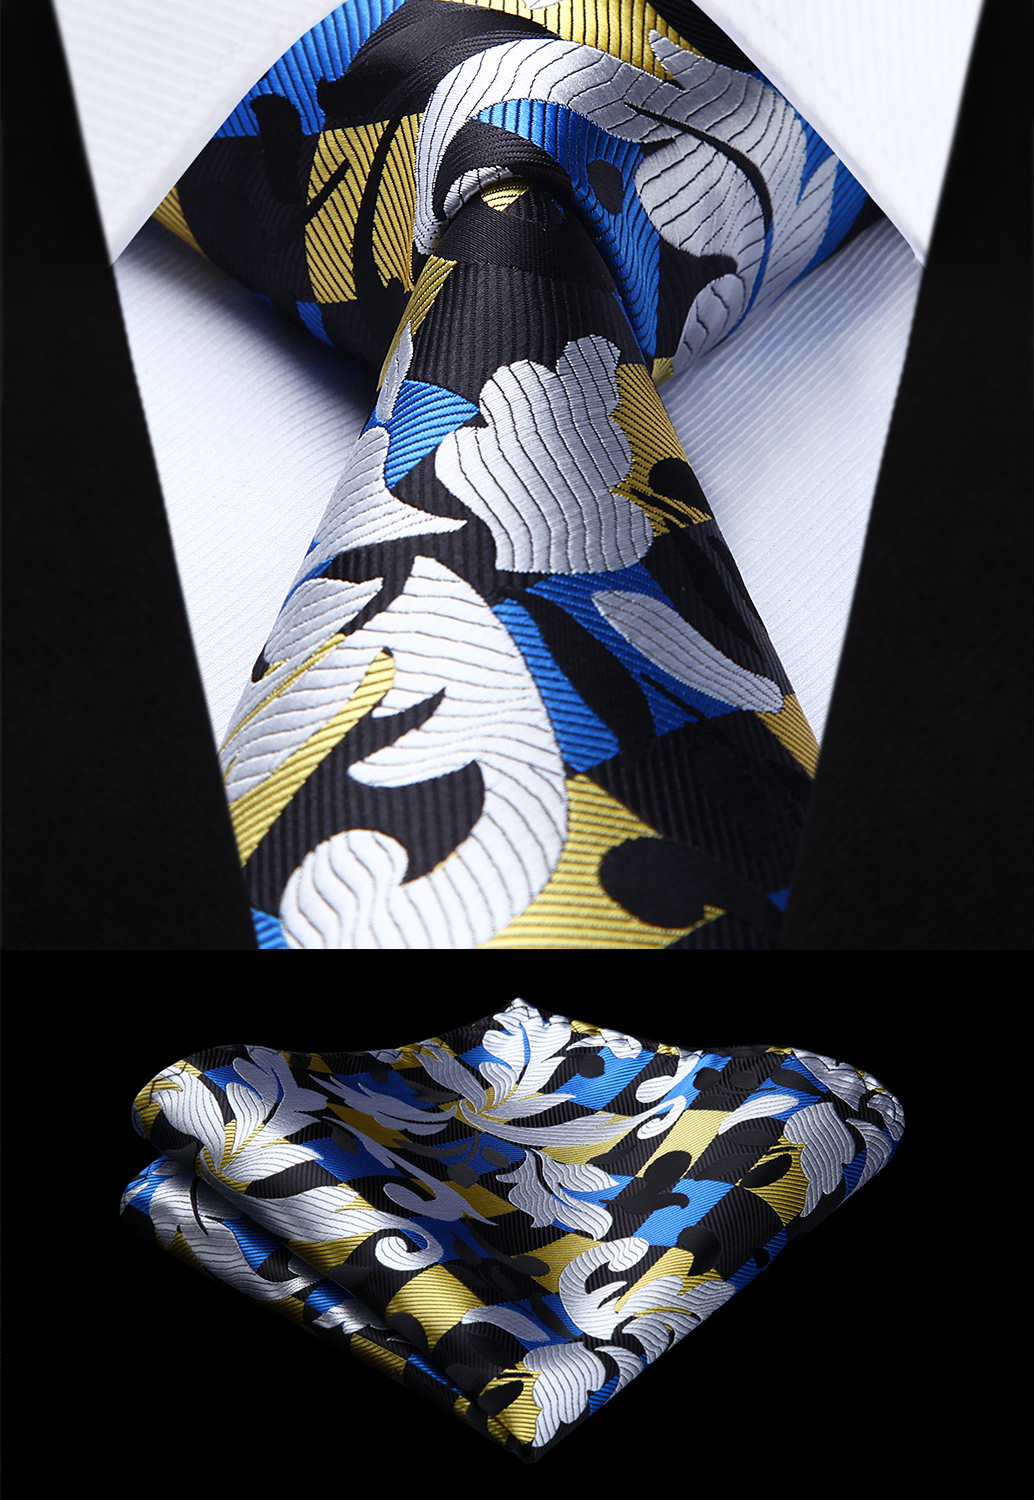 Woven Men White Yellow Tie Floral Necktie Handkerchief Set#TG806W8S Party Wedding Classic Fashion Pocket Square Tie